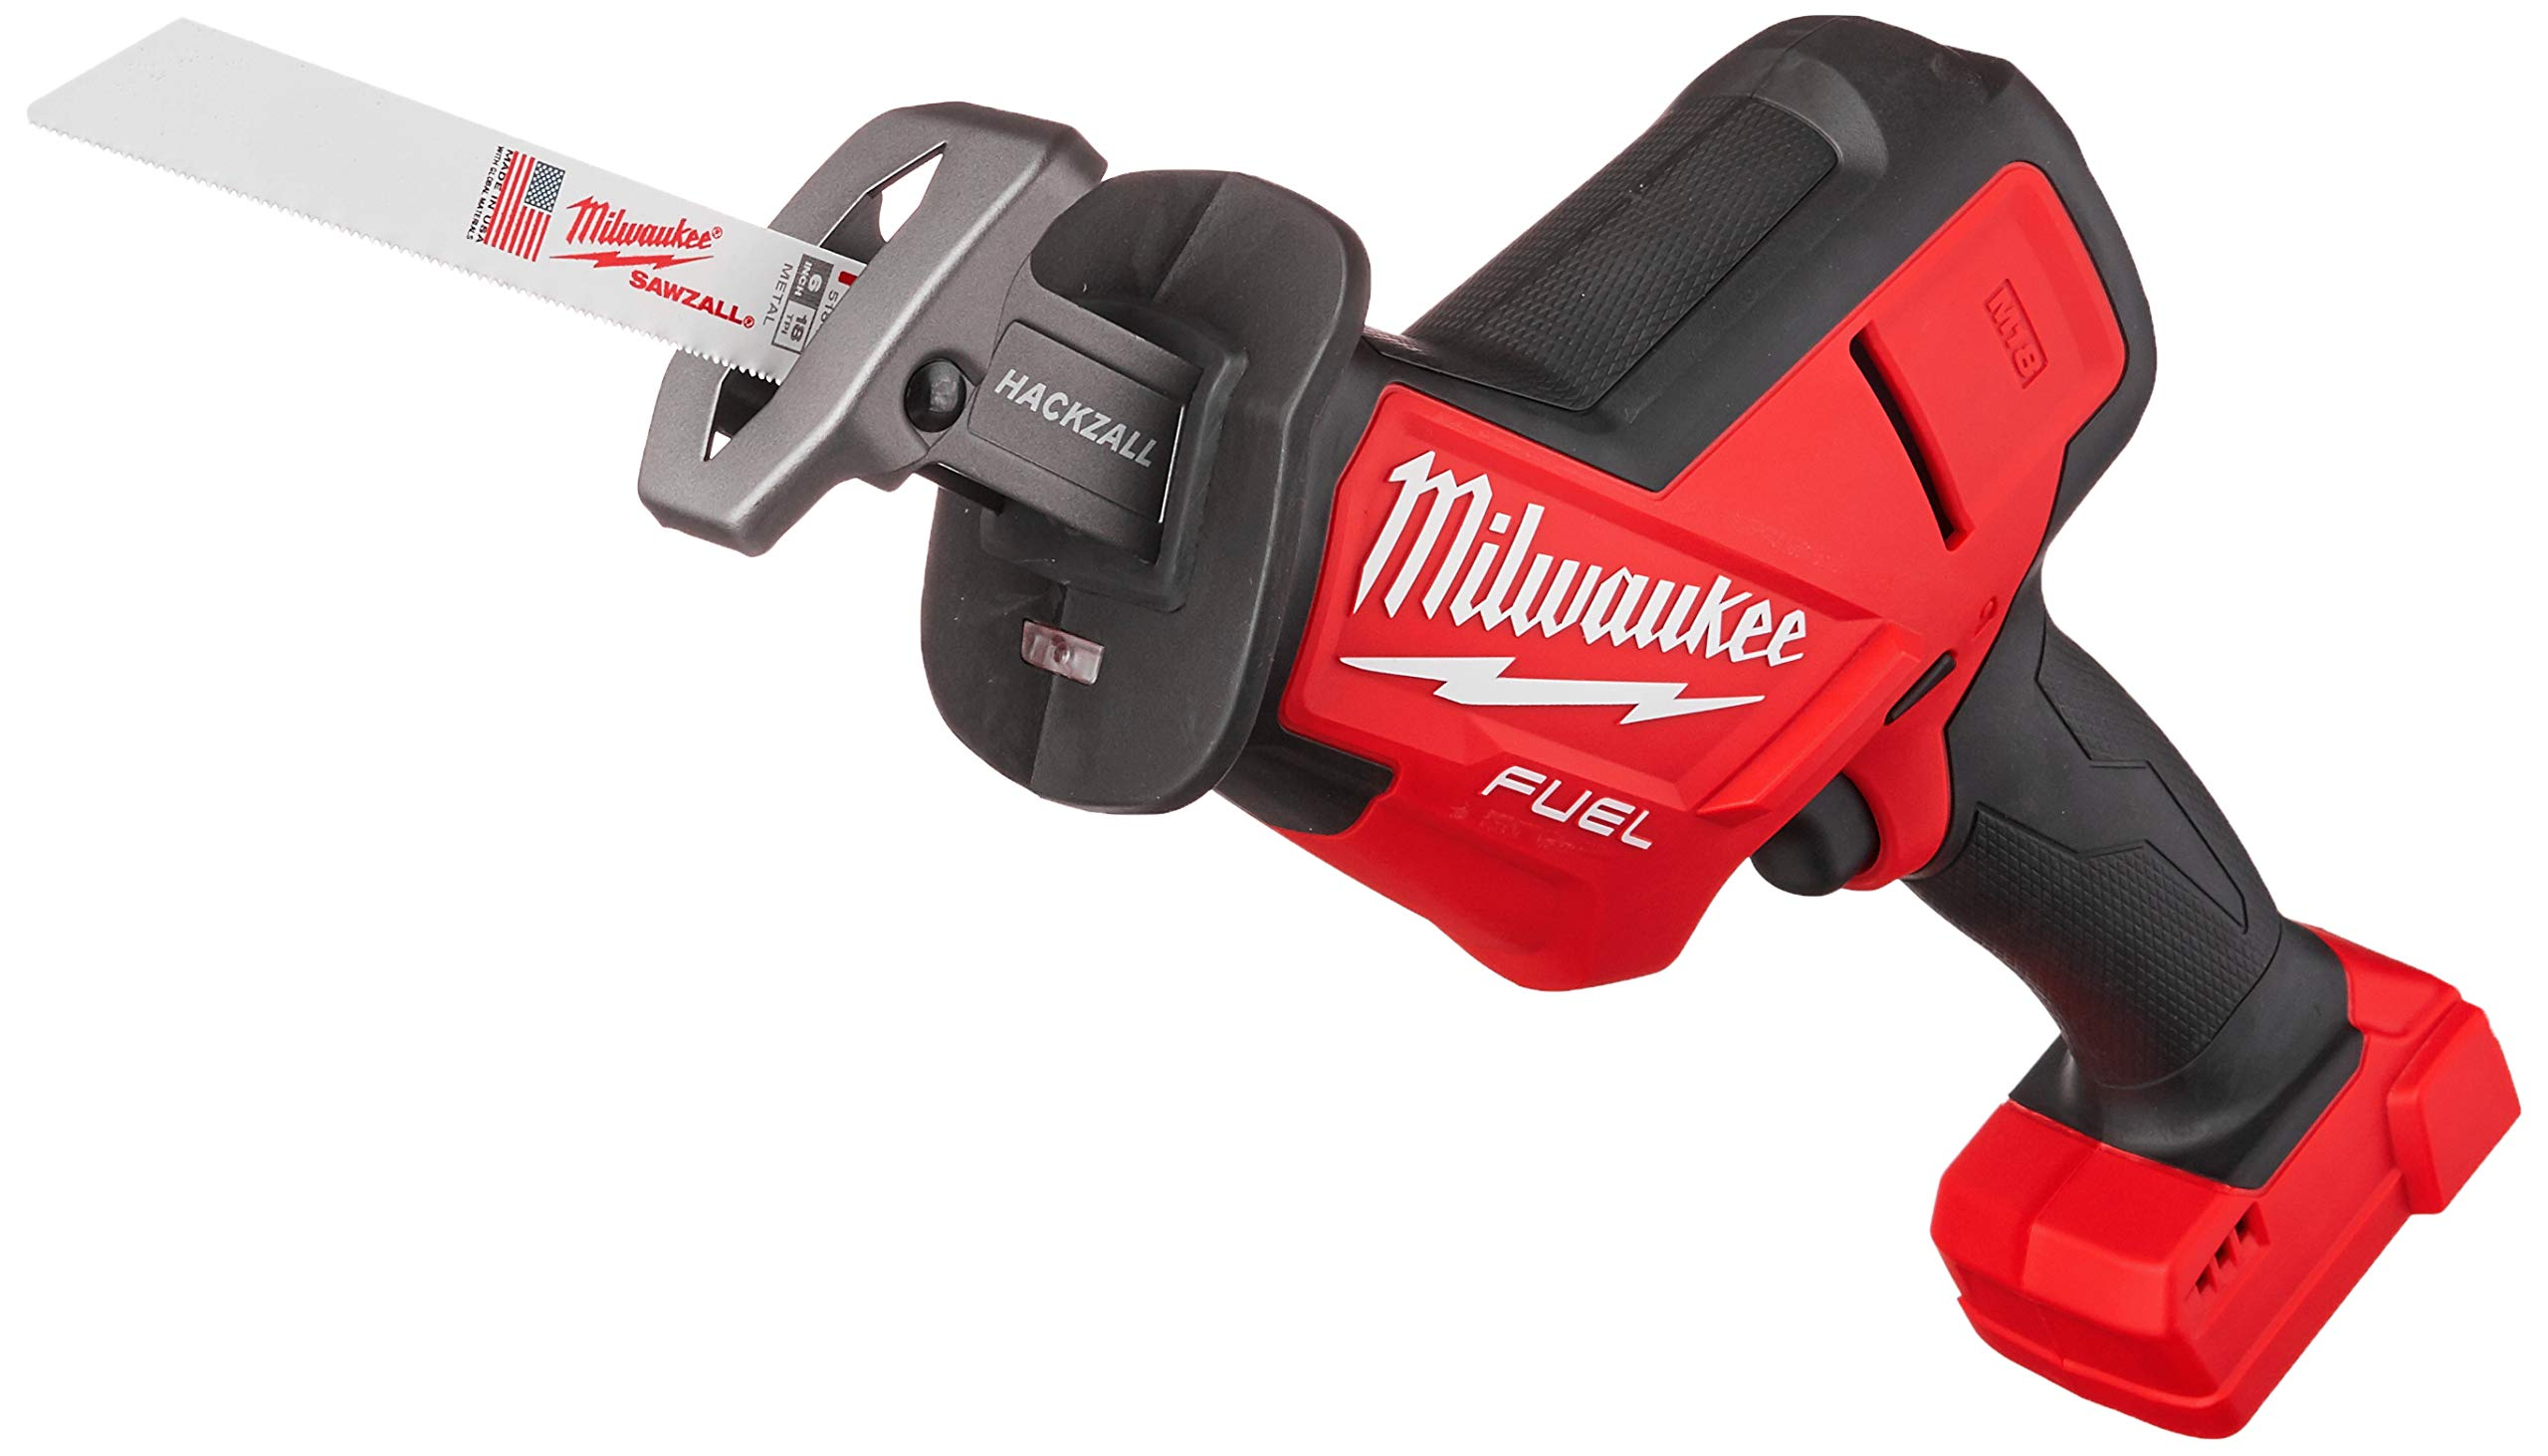 Milwaukee 2719-20 M18 FUEL Hackzall (Bare Tool), Red, Black, by Milwaukee